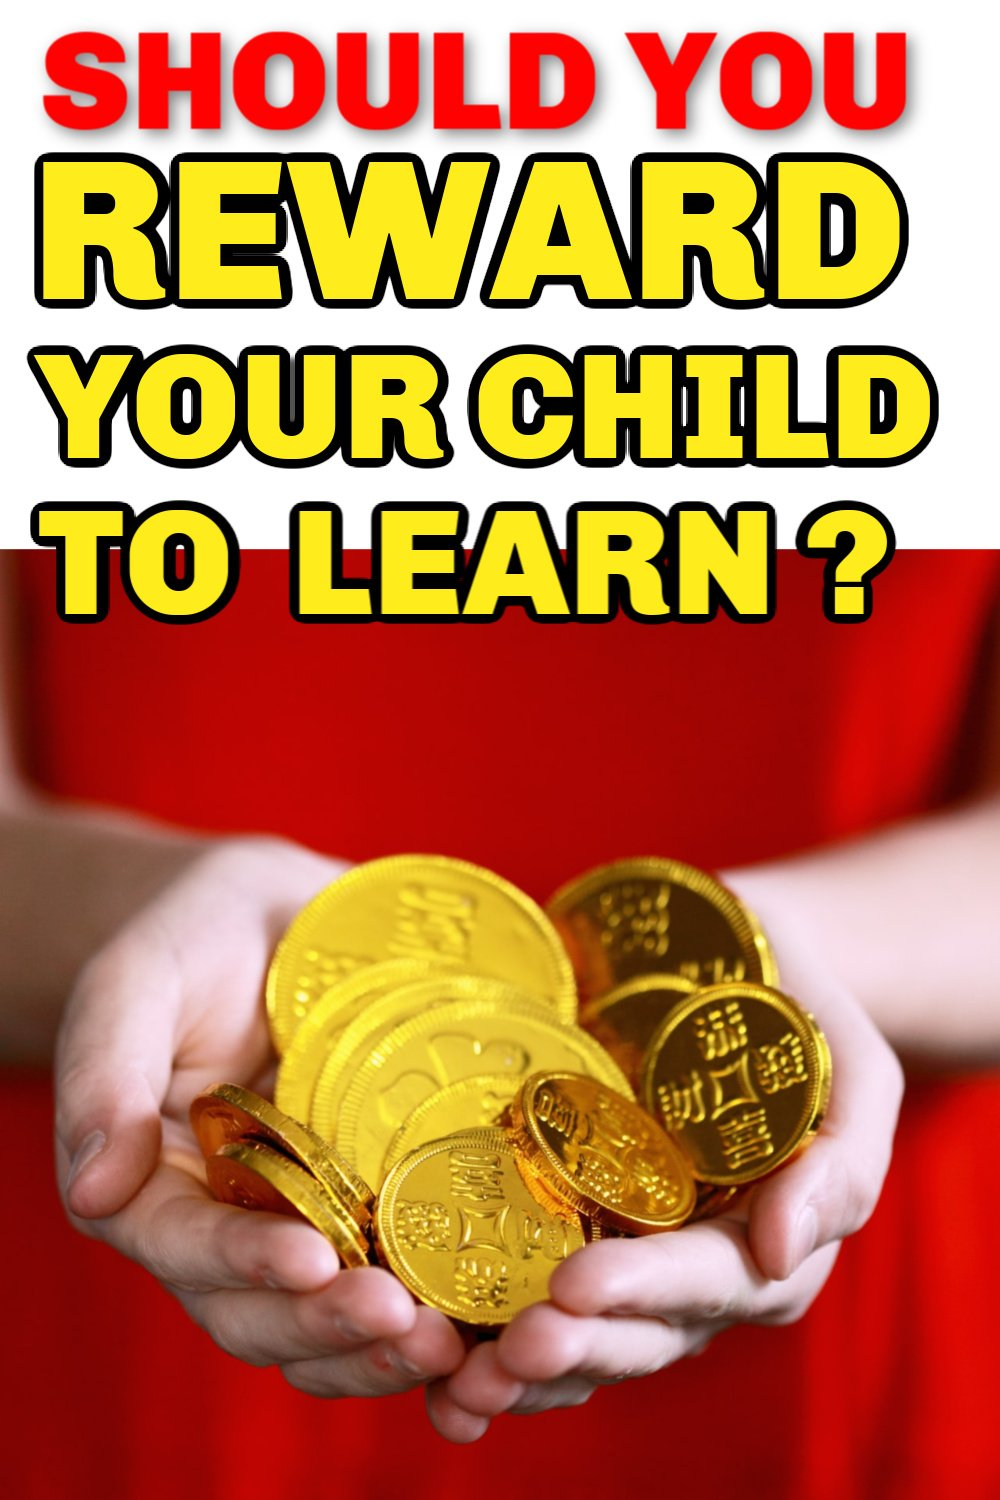 Reward children for learning